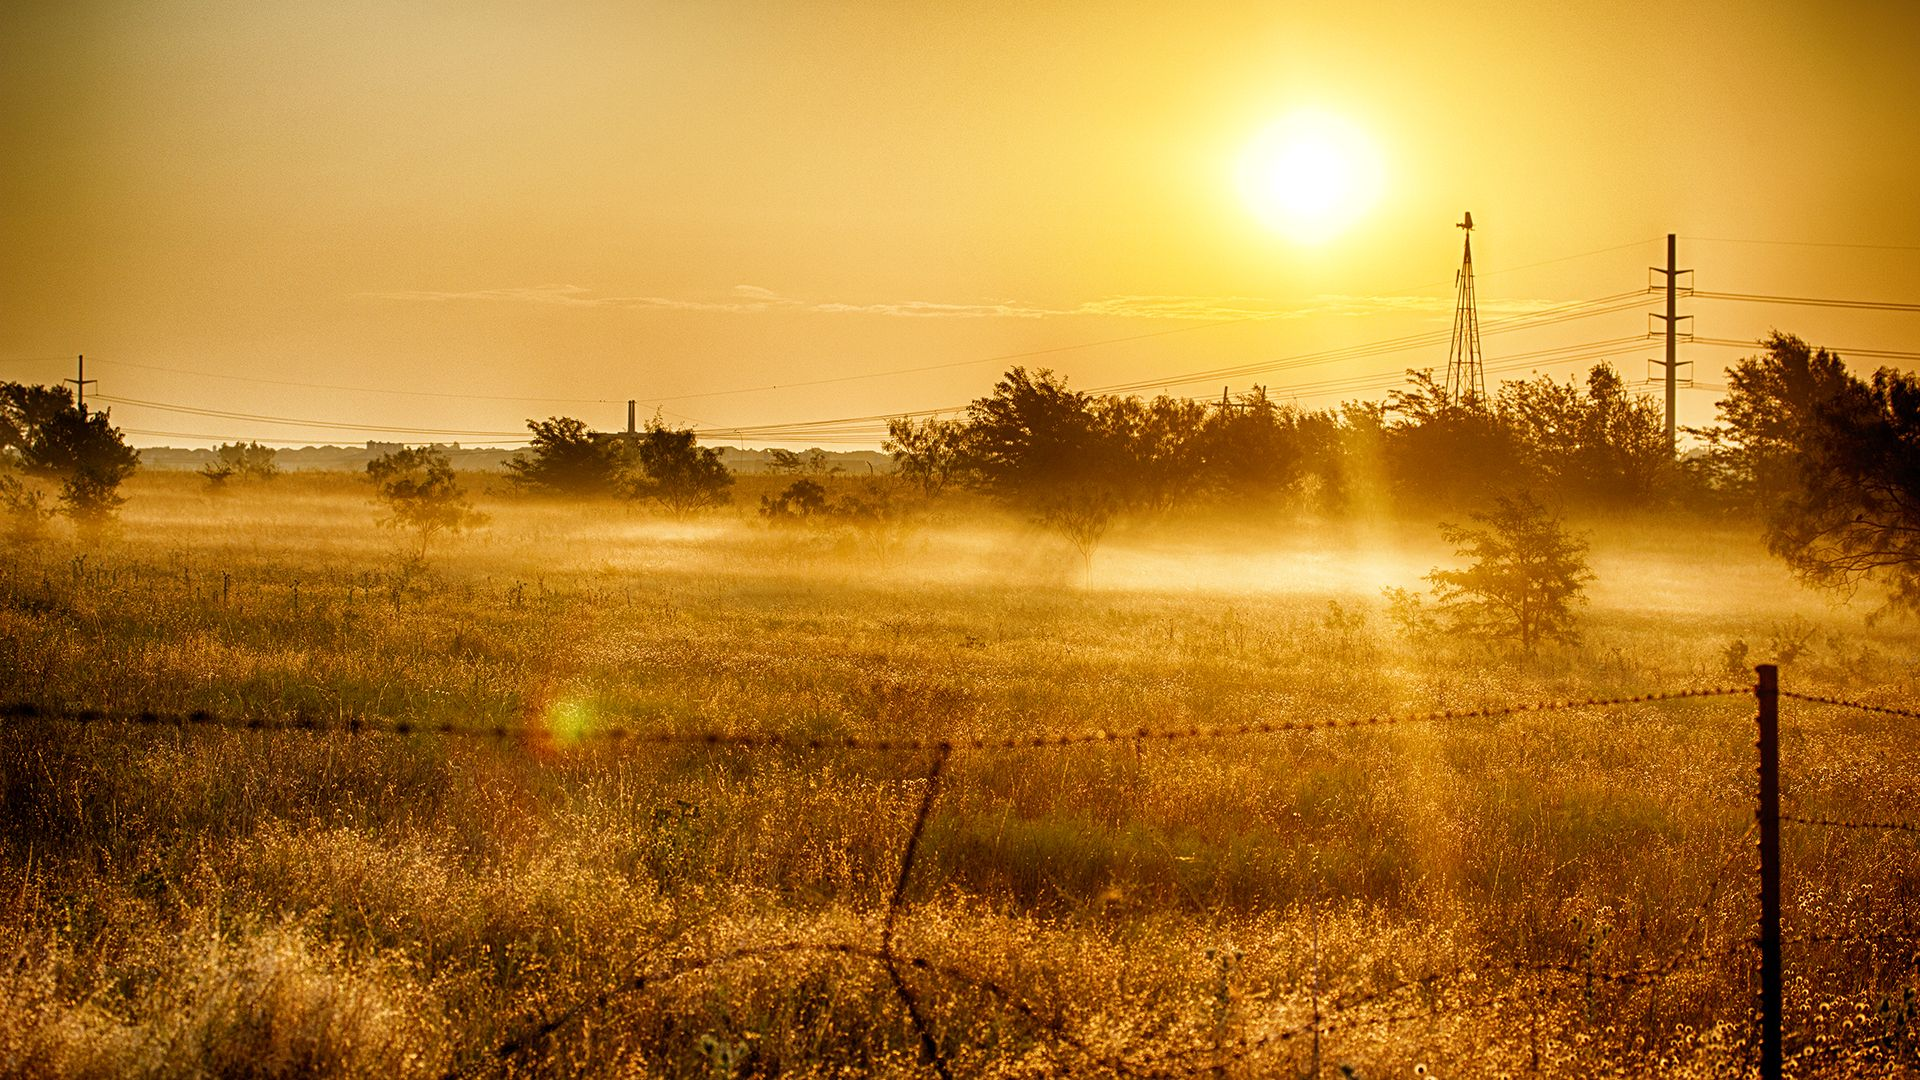 country setting wallpaper | Country Sunrise HD Wallpaper - HD ...